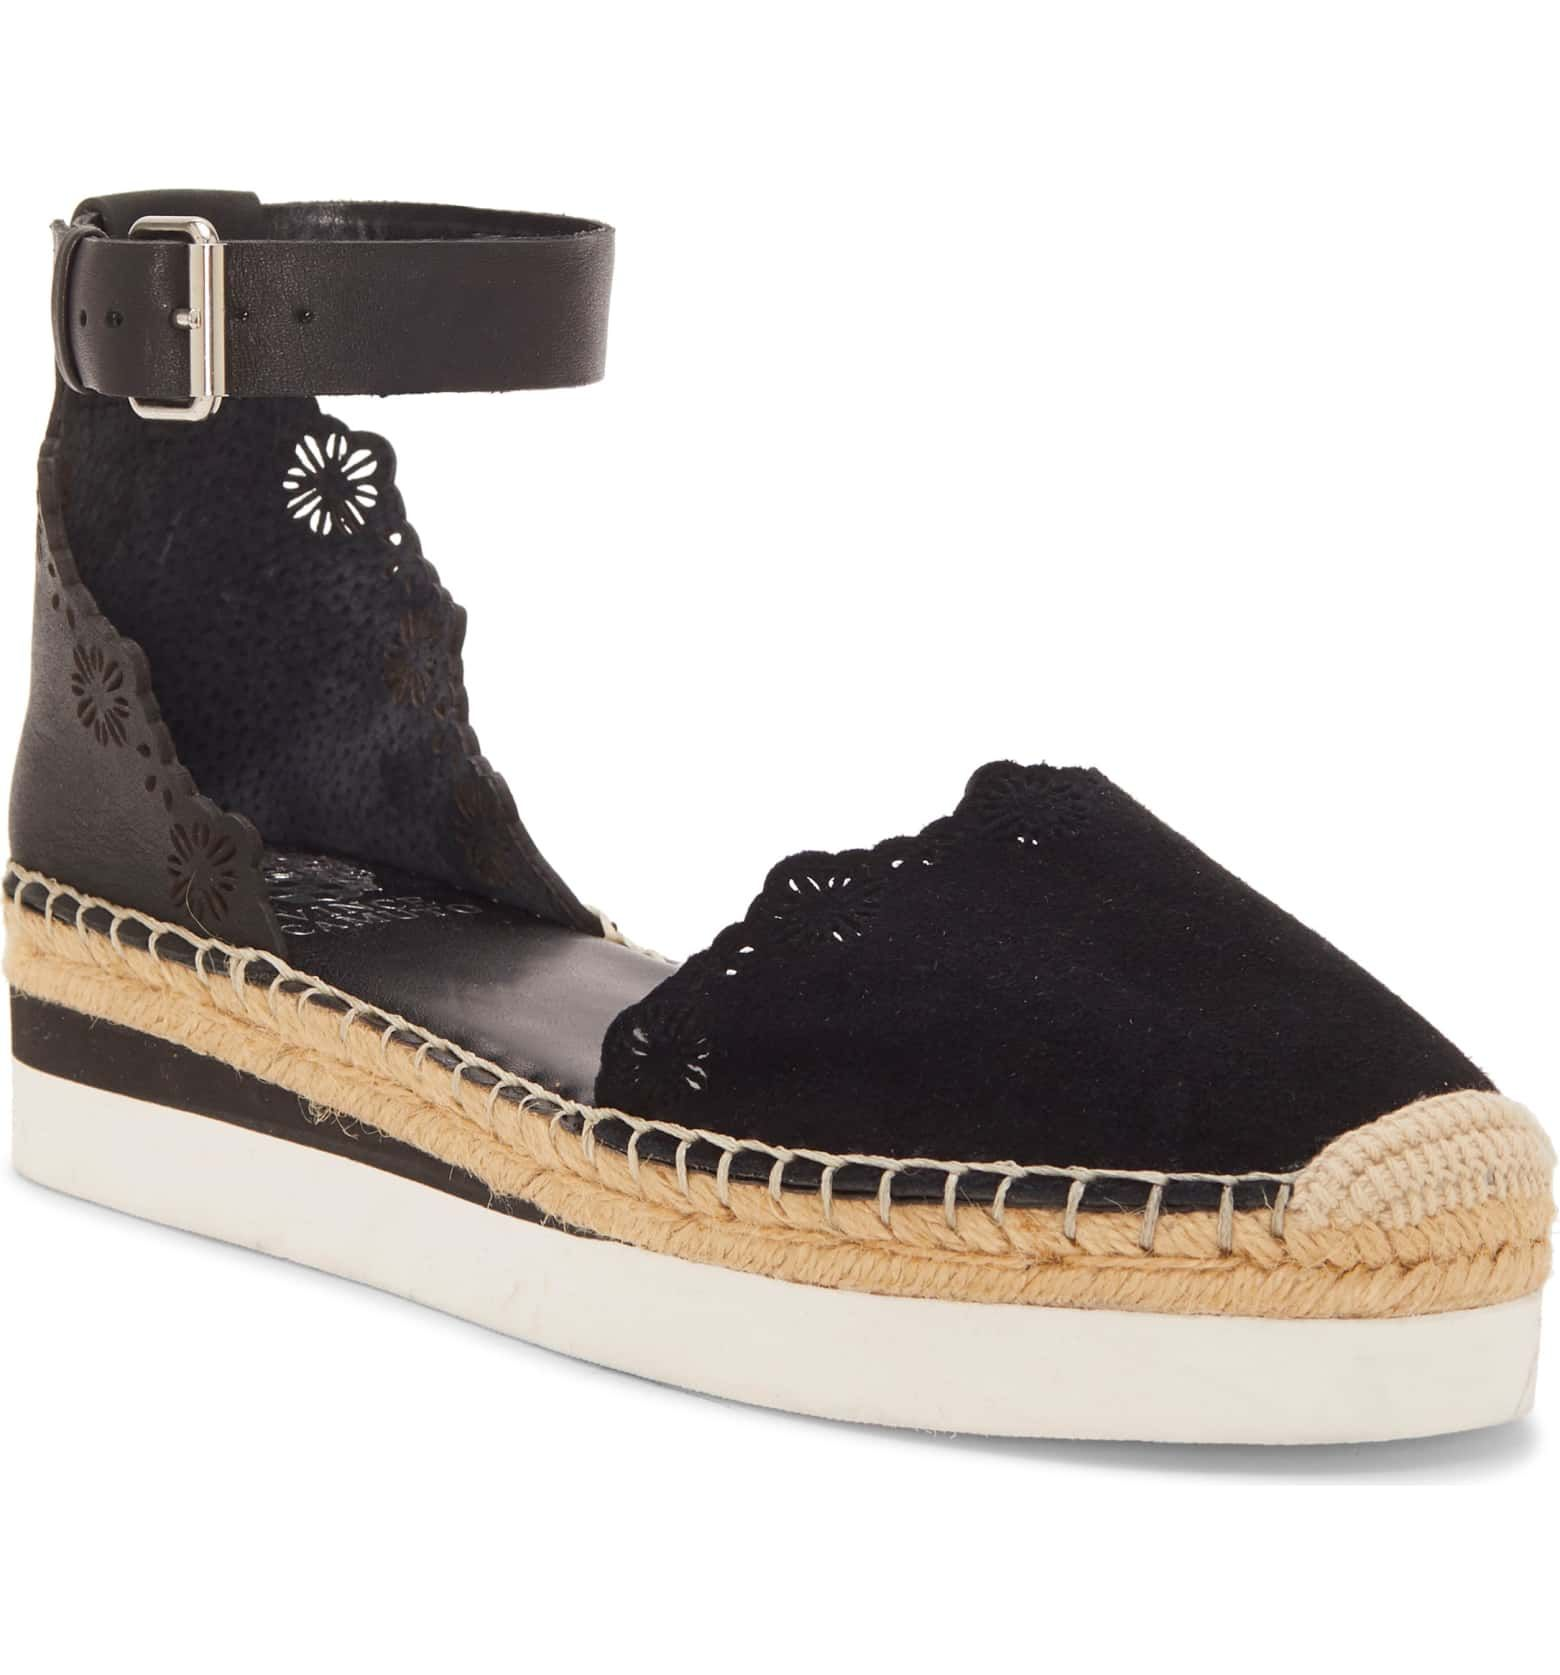 78c067a2e64 Vince Camuto Breshan Ankle Strap Espadrille Wedge (Women ...